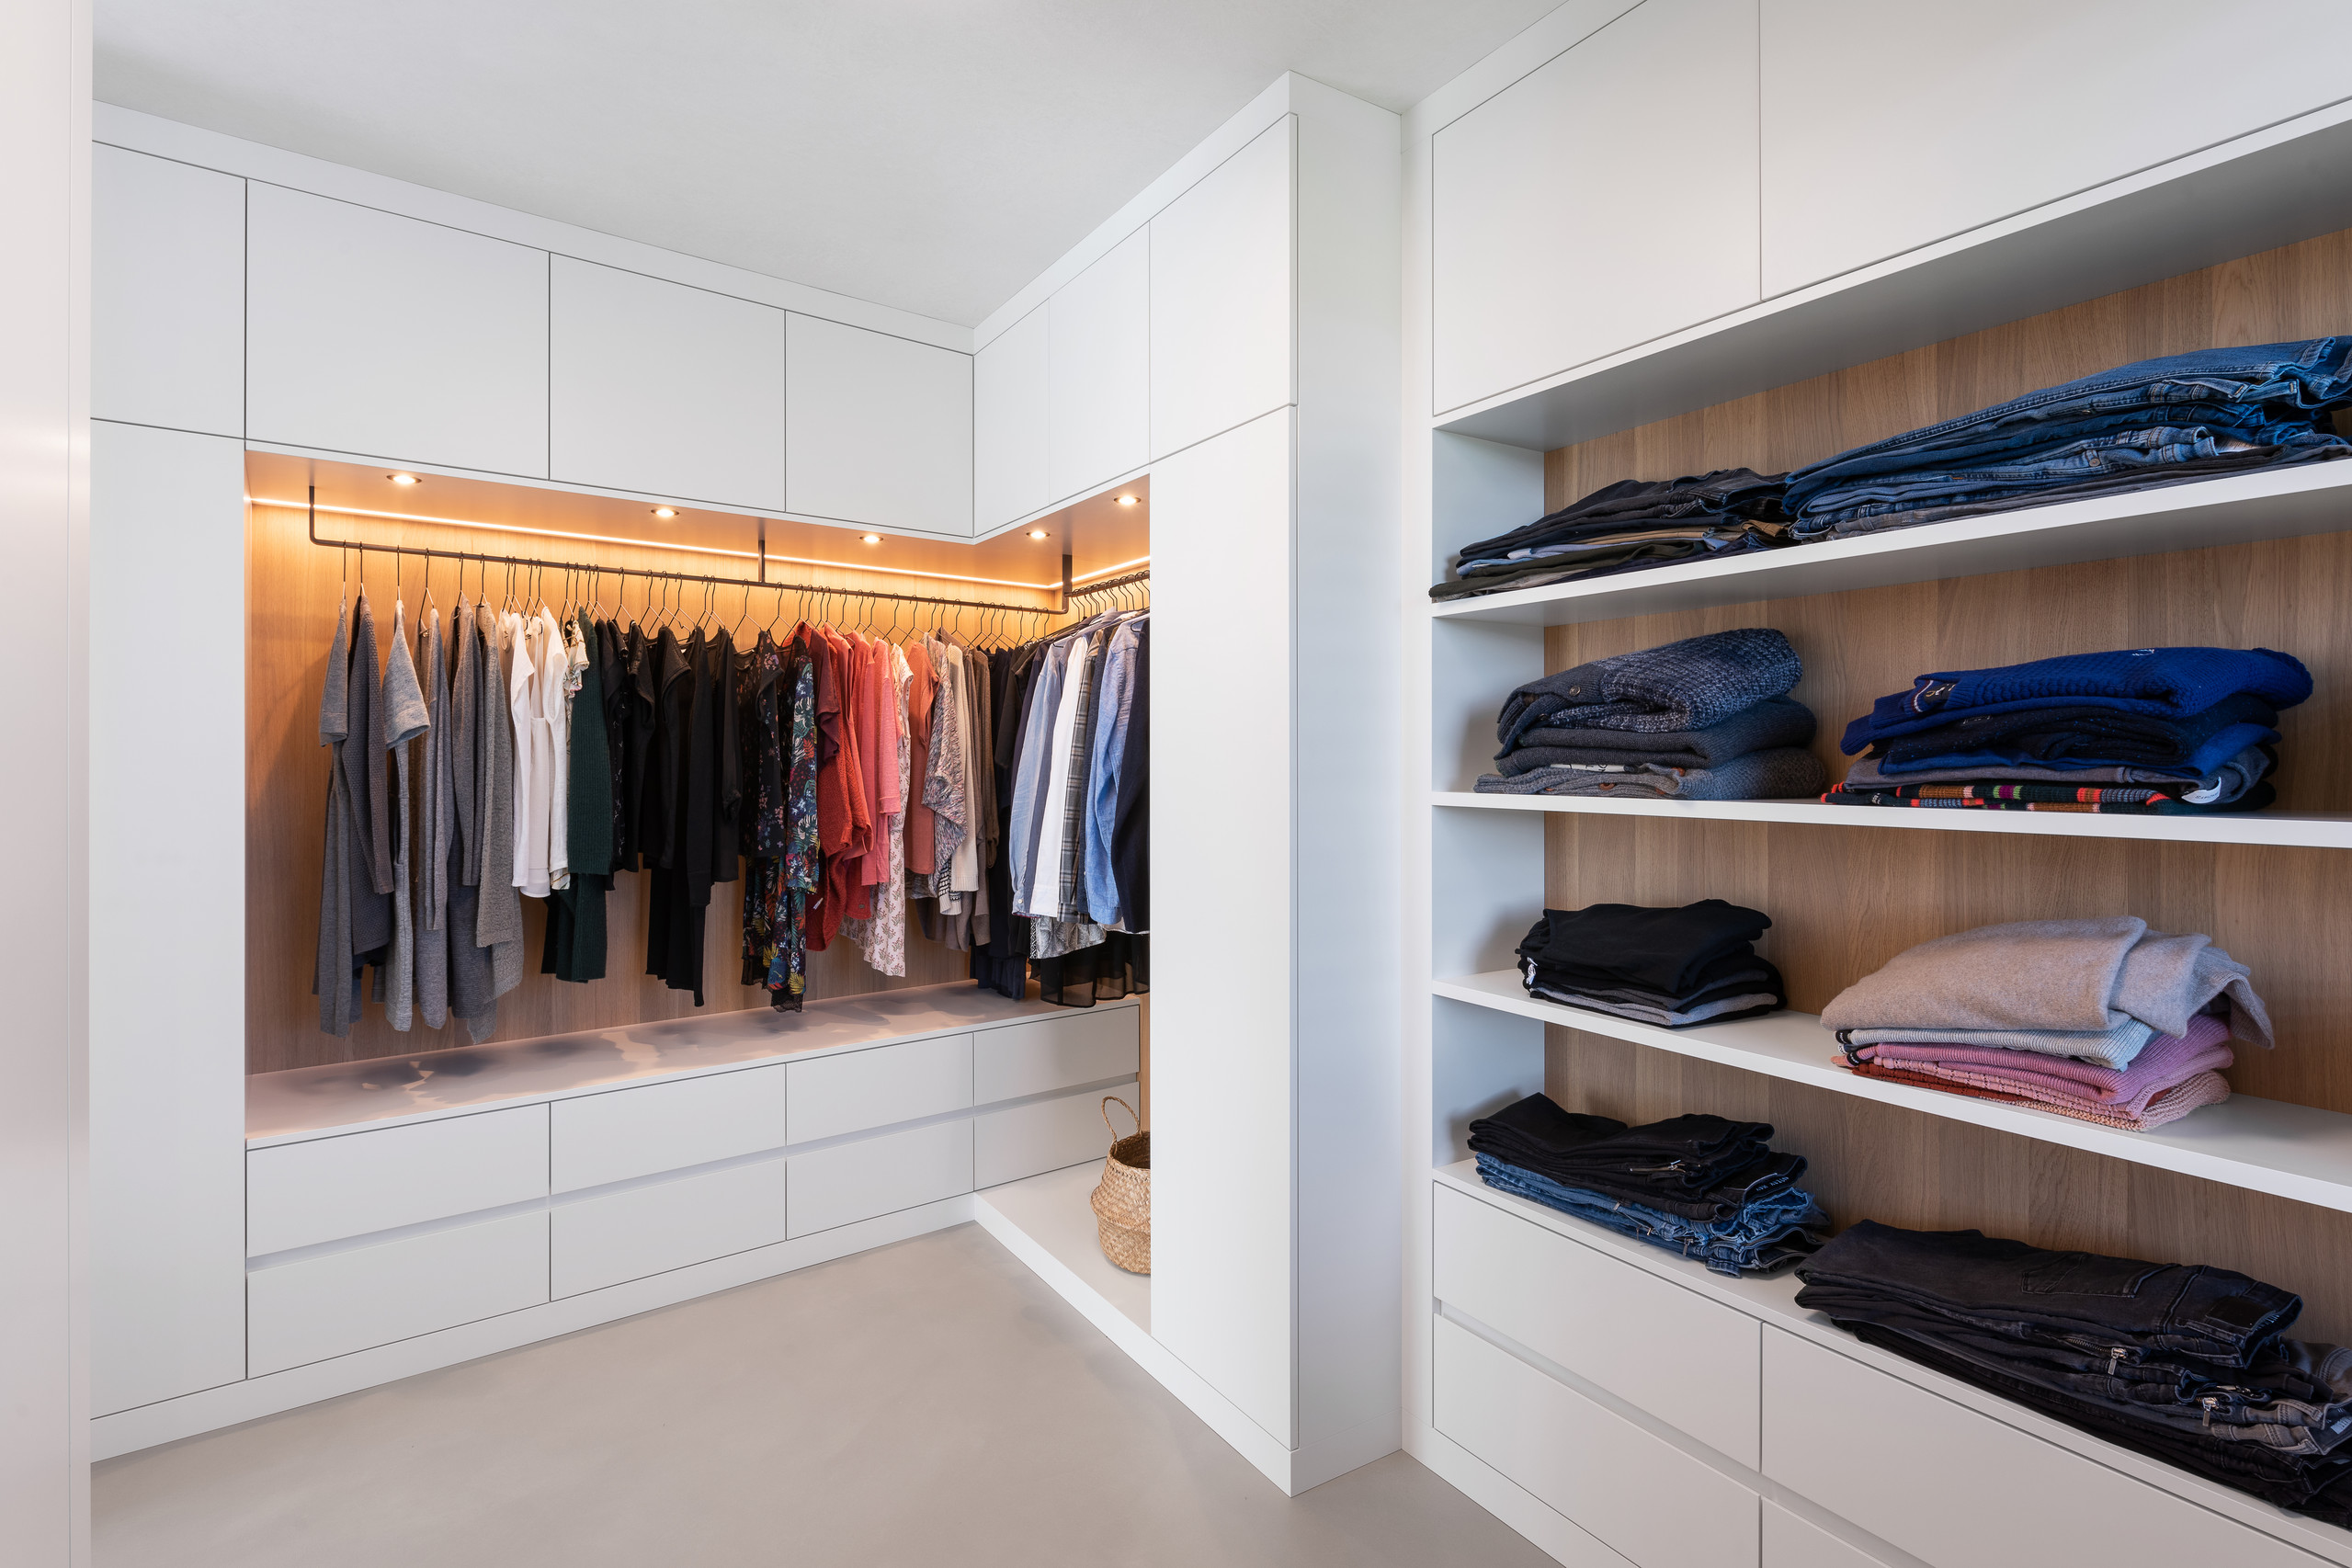 Ankleidezimmer Modern 75 Beautiful Concrete Floor Walk-in Closet Pictures & Ideas - May, 2021 | Houzz